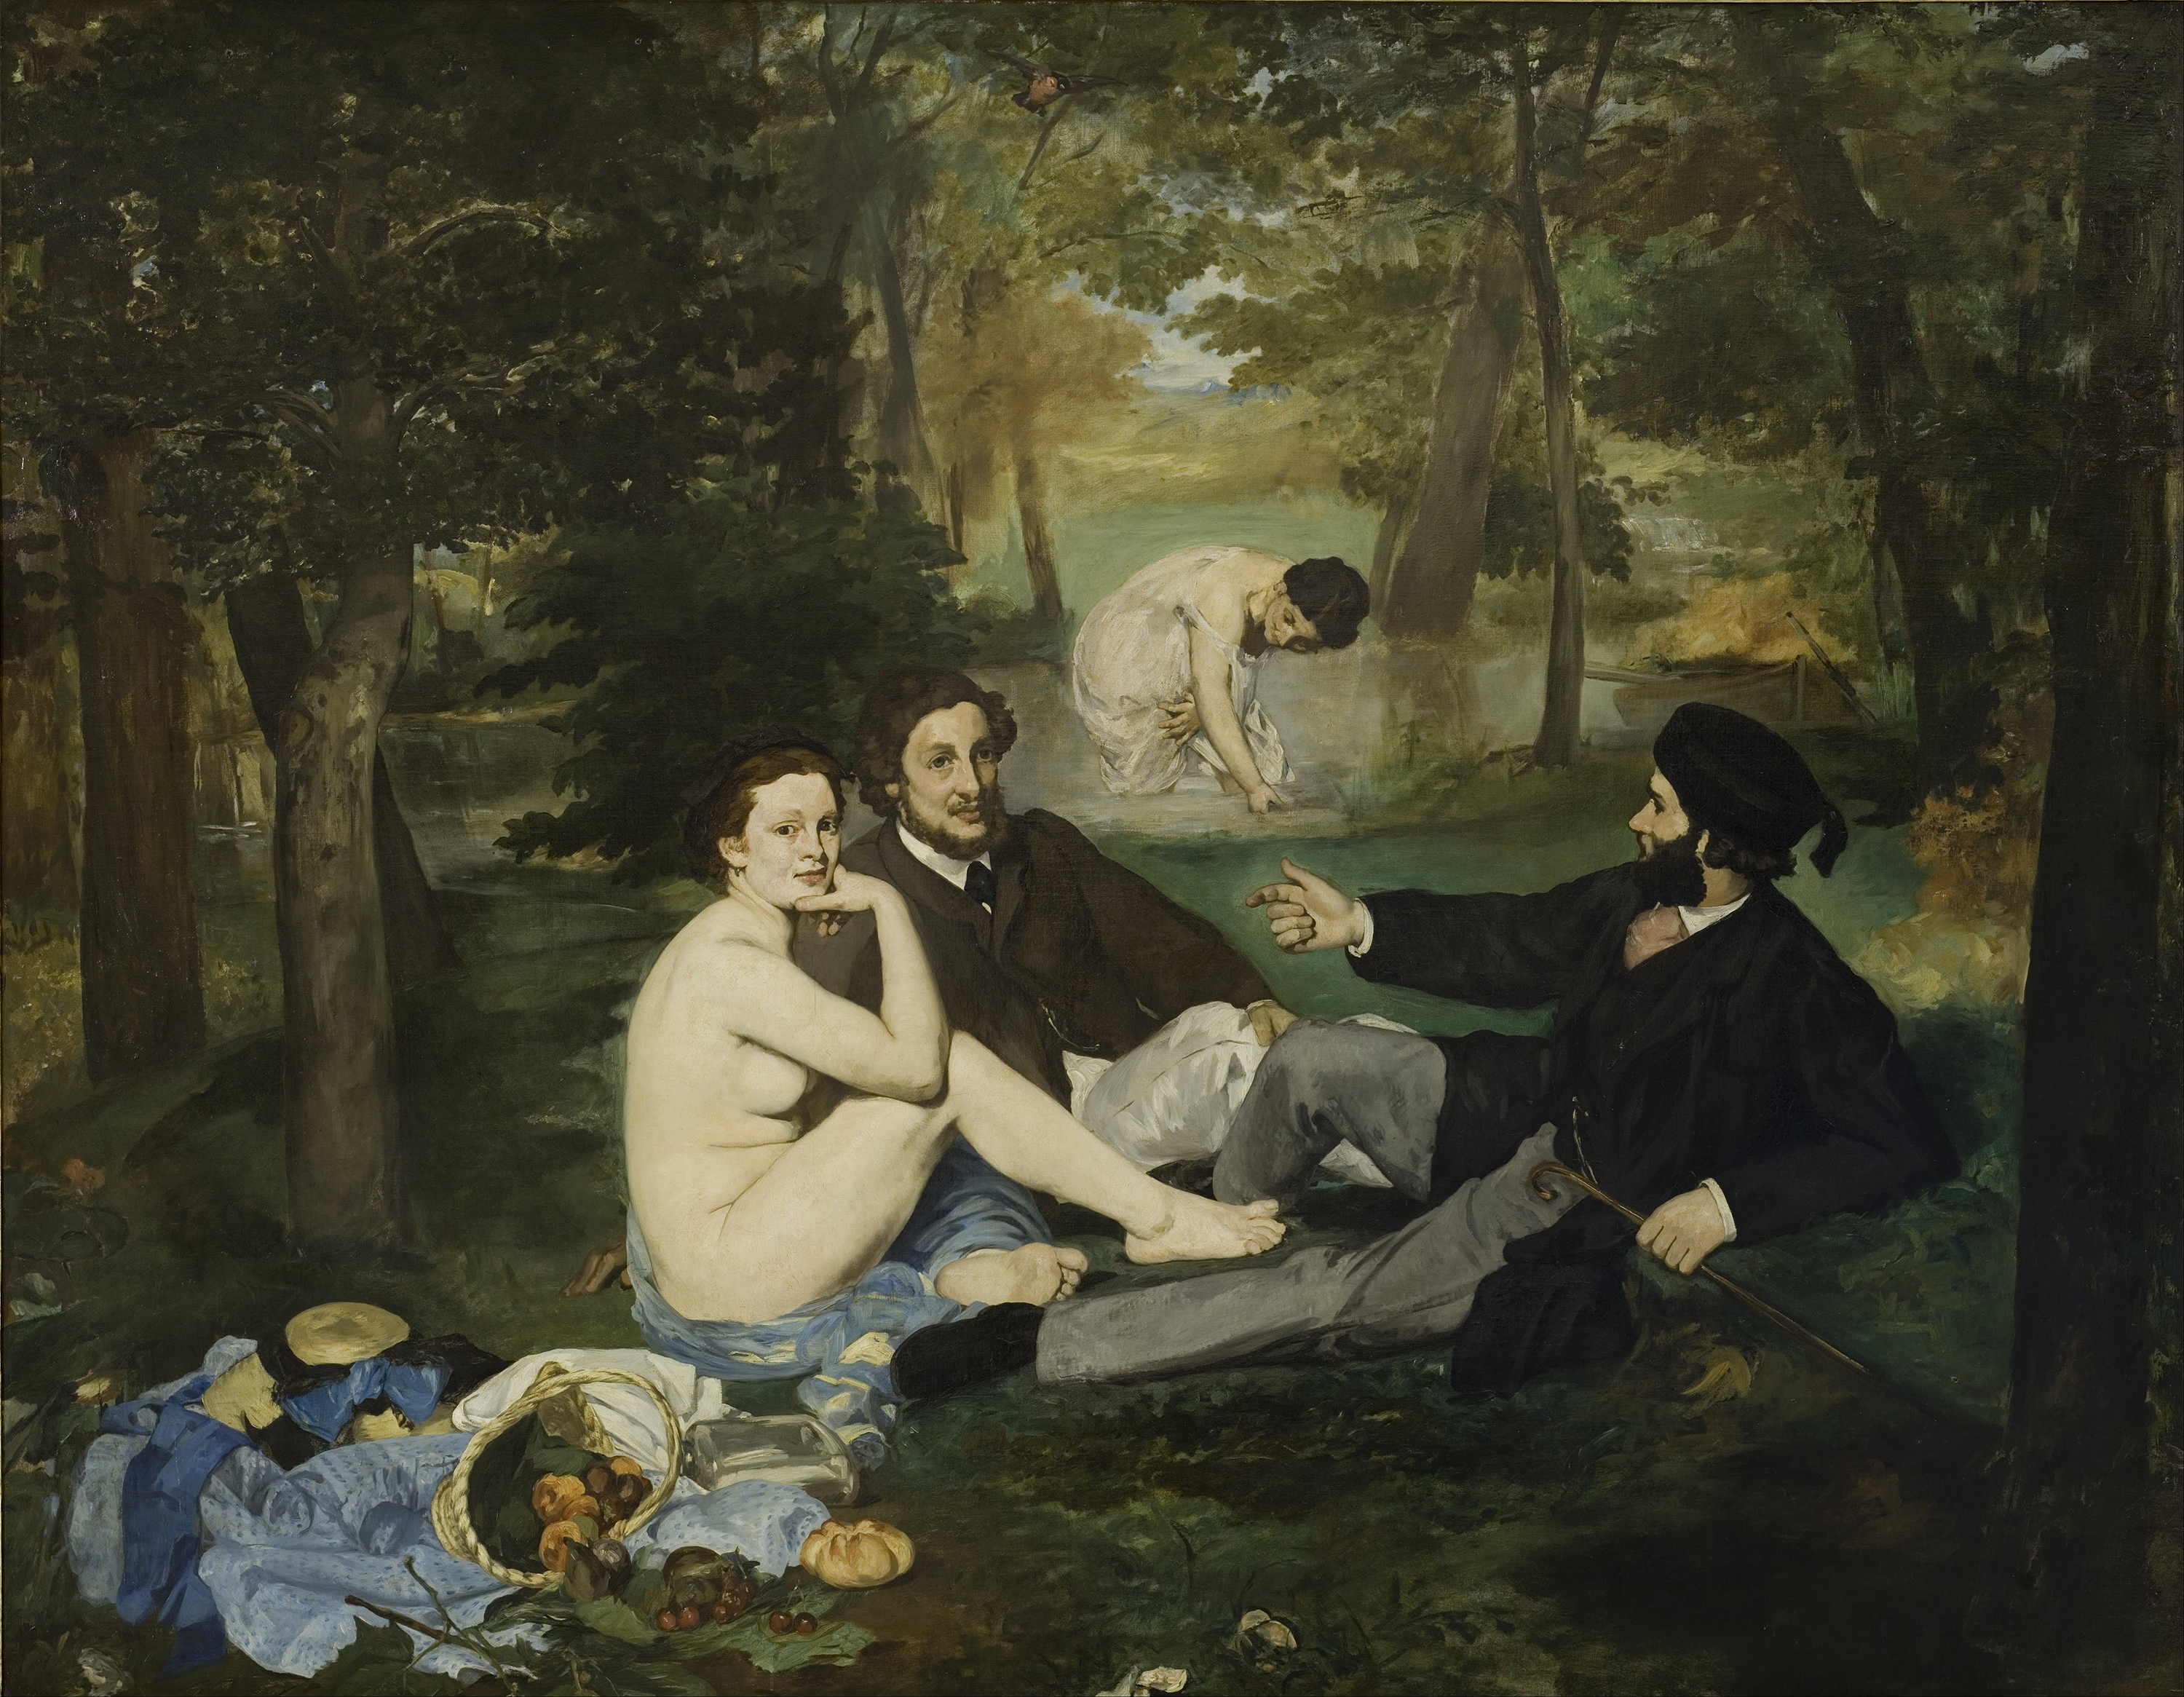 Sexy, Simple, Satirical: 300 Years Of Picnics In Art